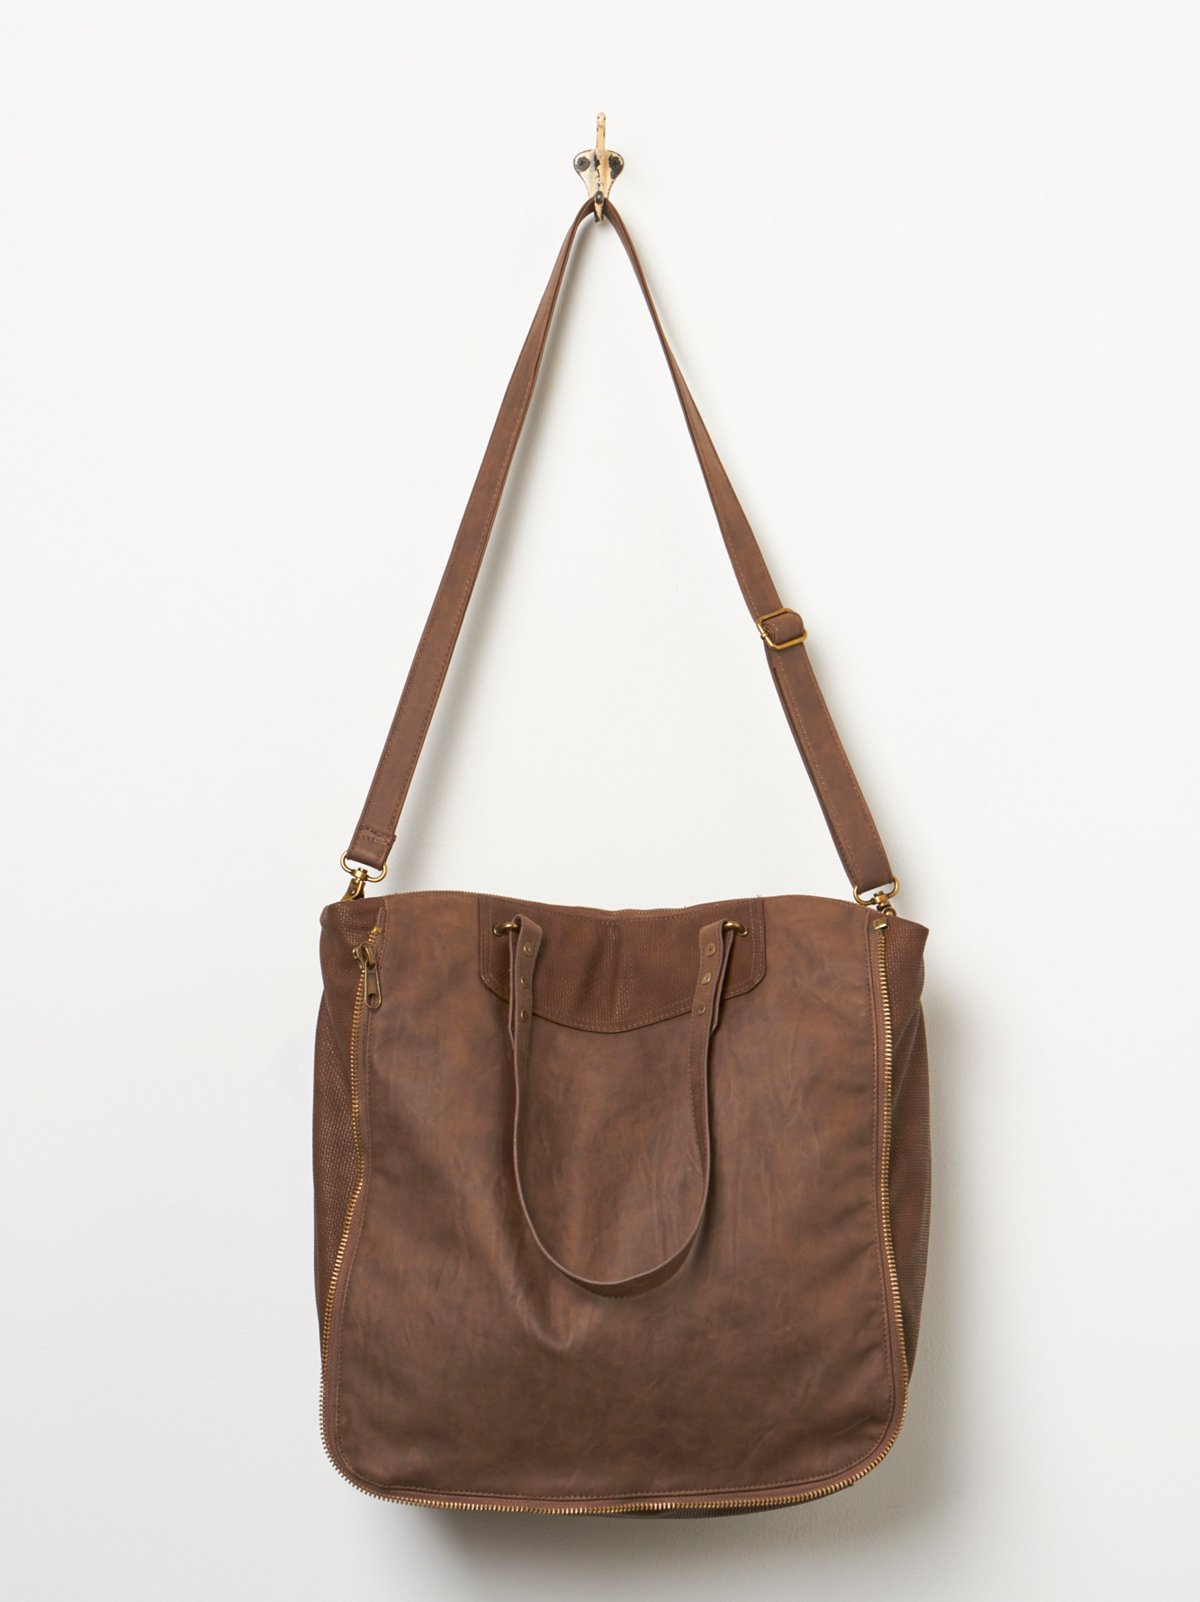 Ace Convertible Tote